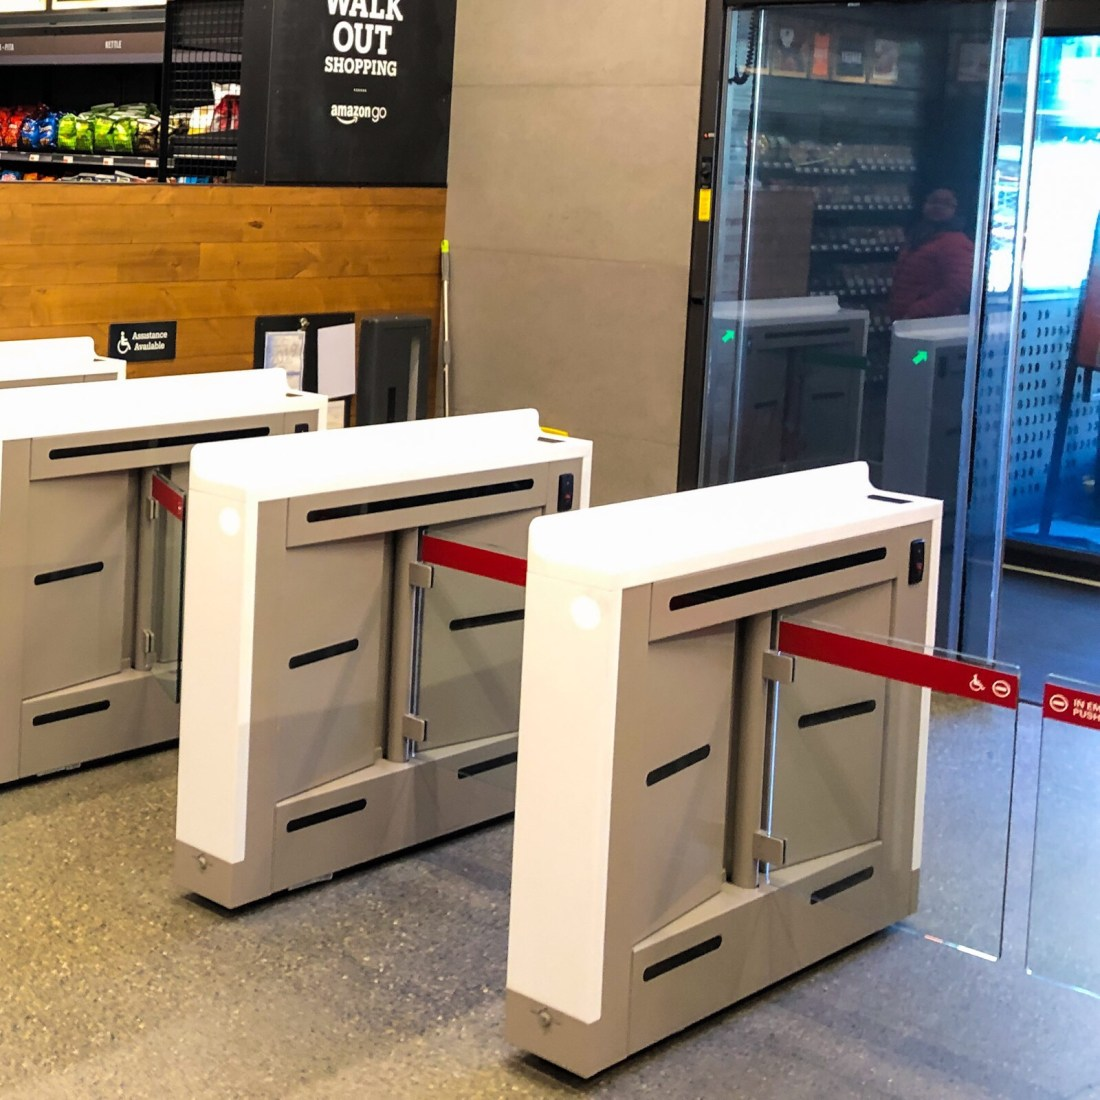 Electronic turnstiles that are entry and exit points for the Amazon Go store.